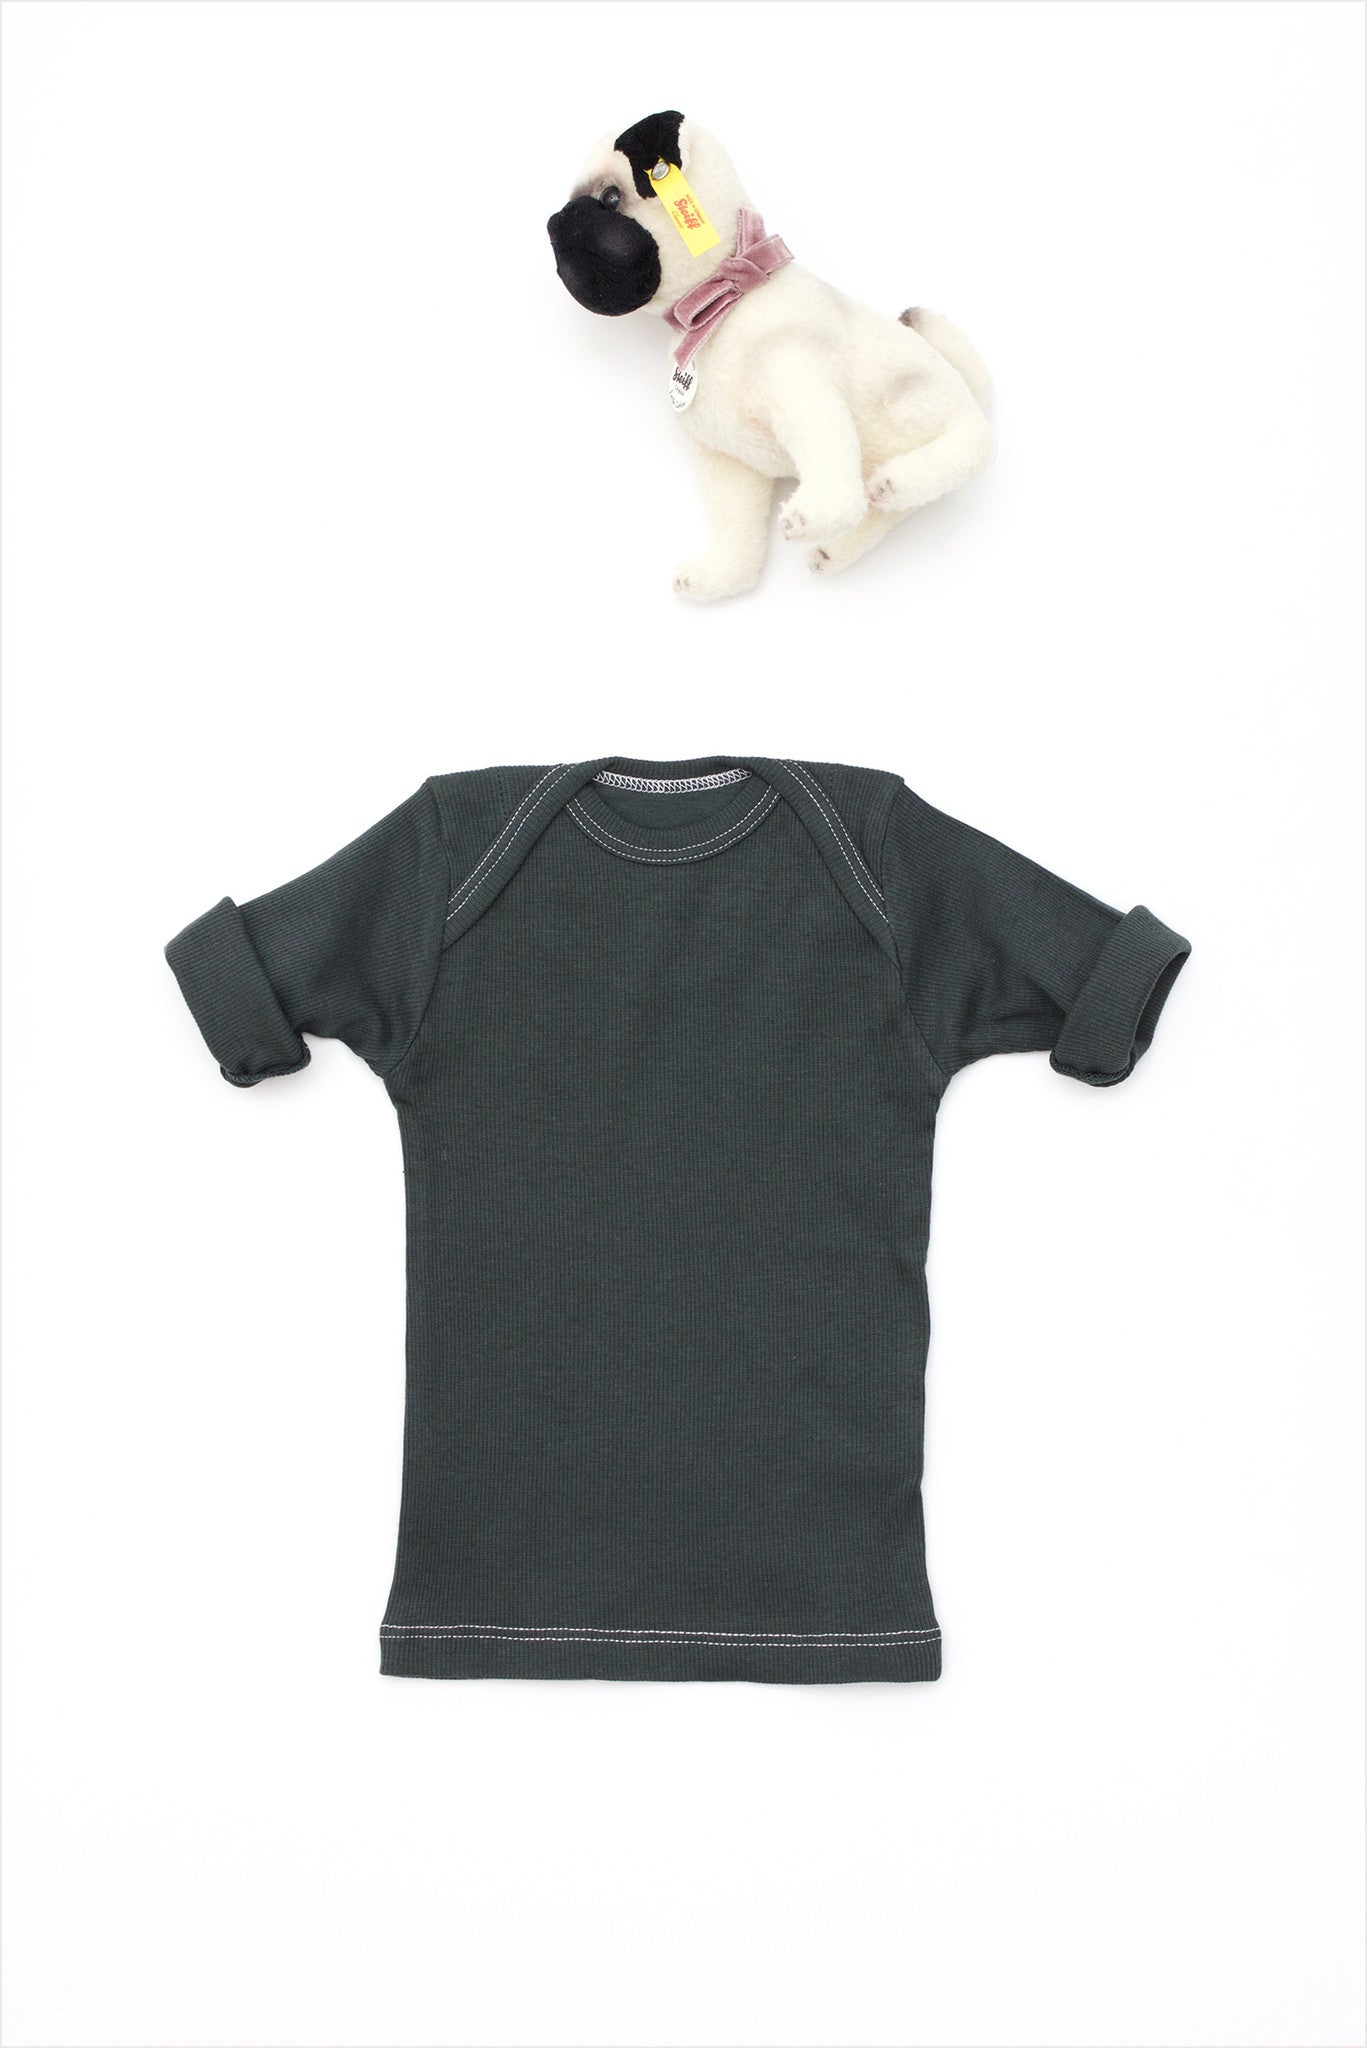 Rib Lap Shoulder Tee Short Sleeve Charcoal